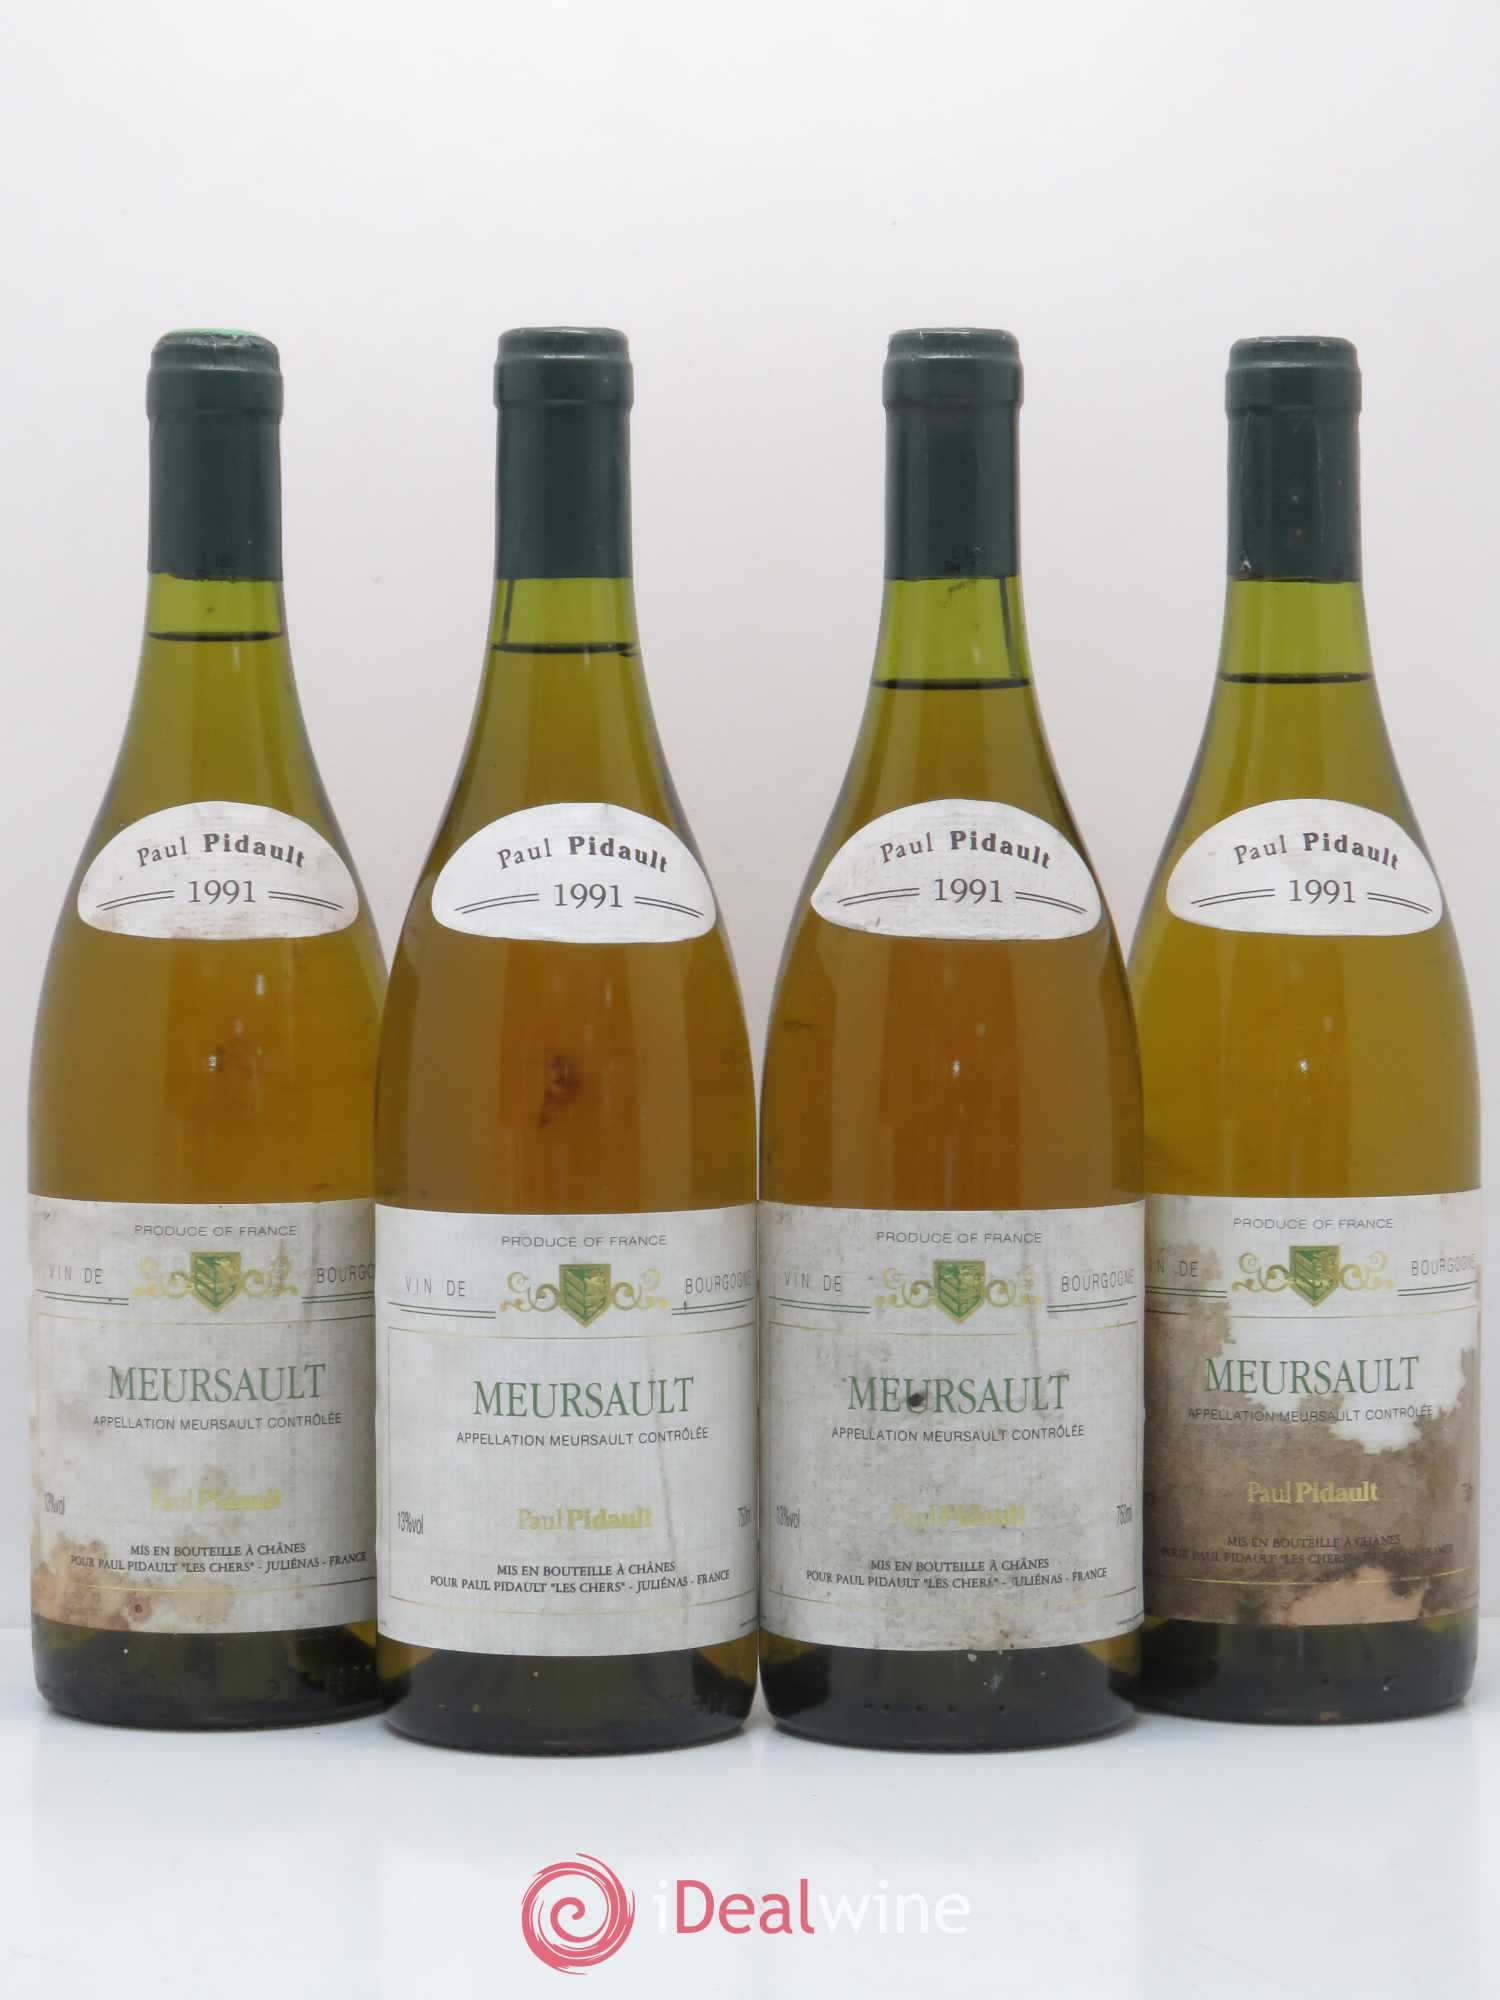 Meursault P. Pidault 1991 - Lot of 4 Bottles